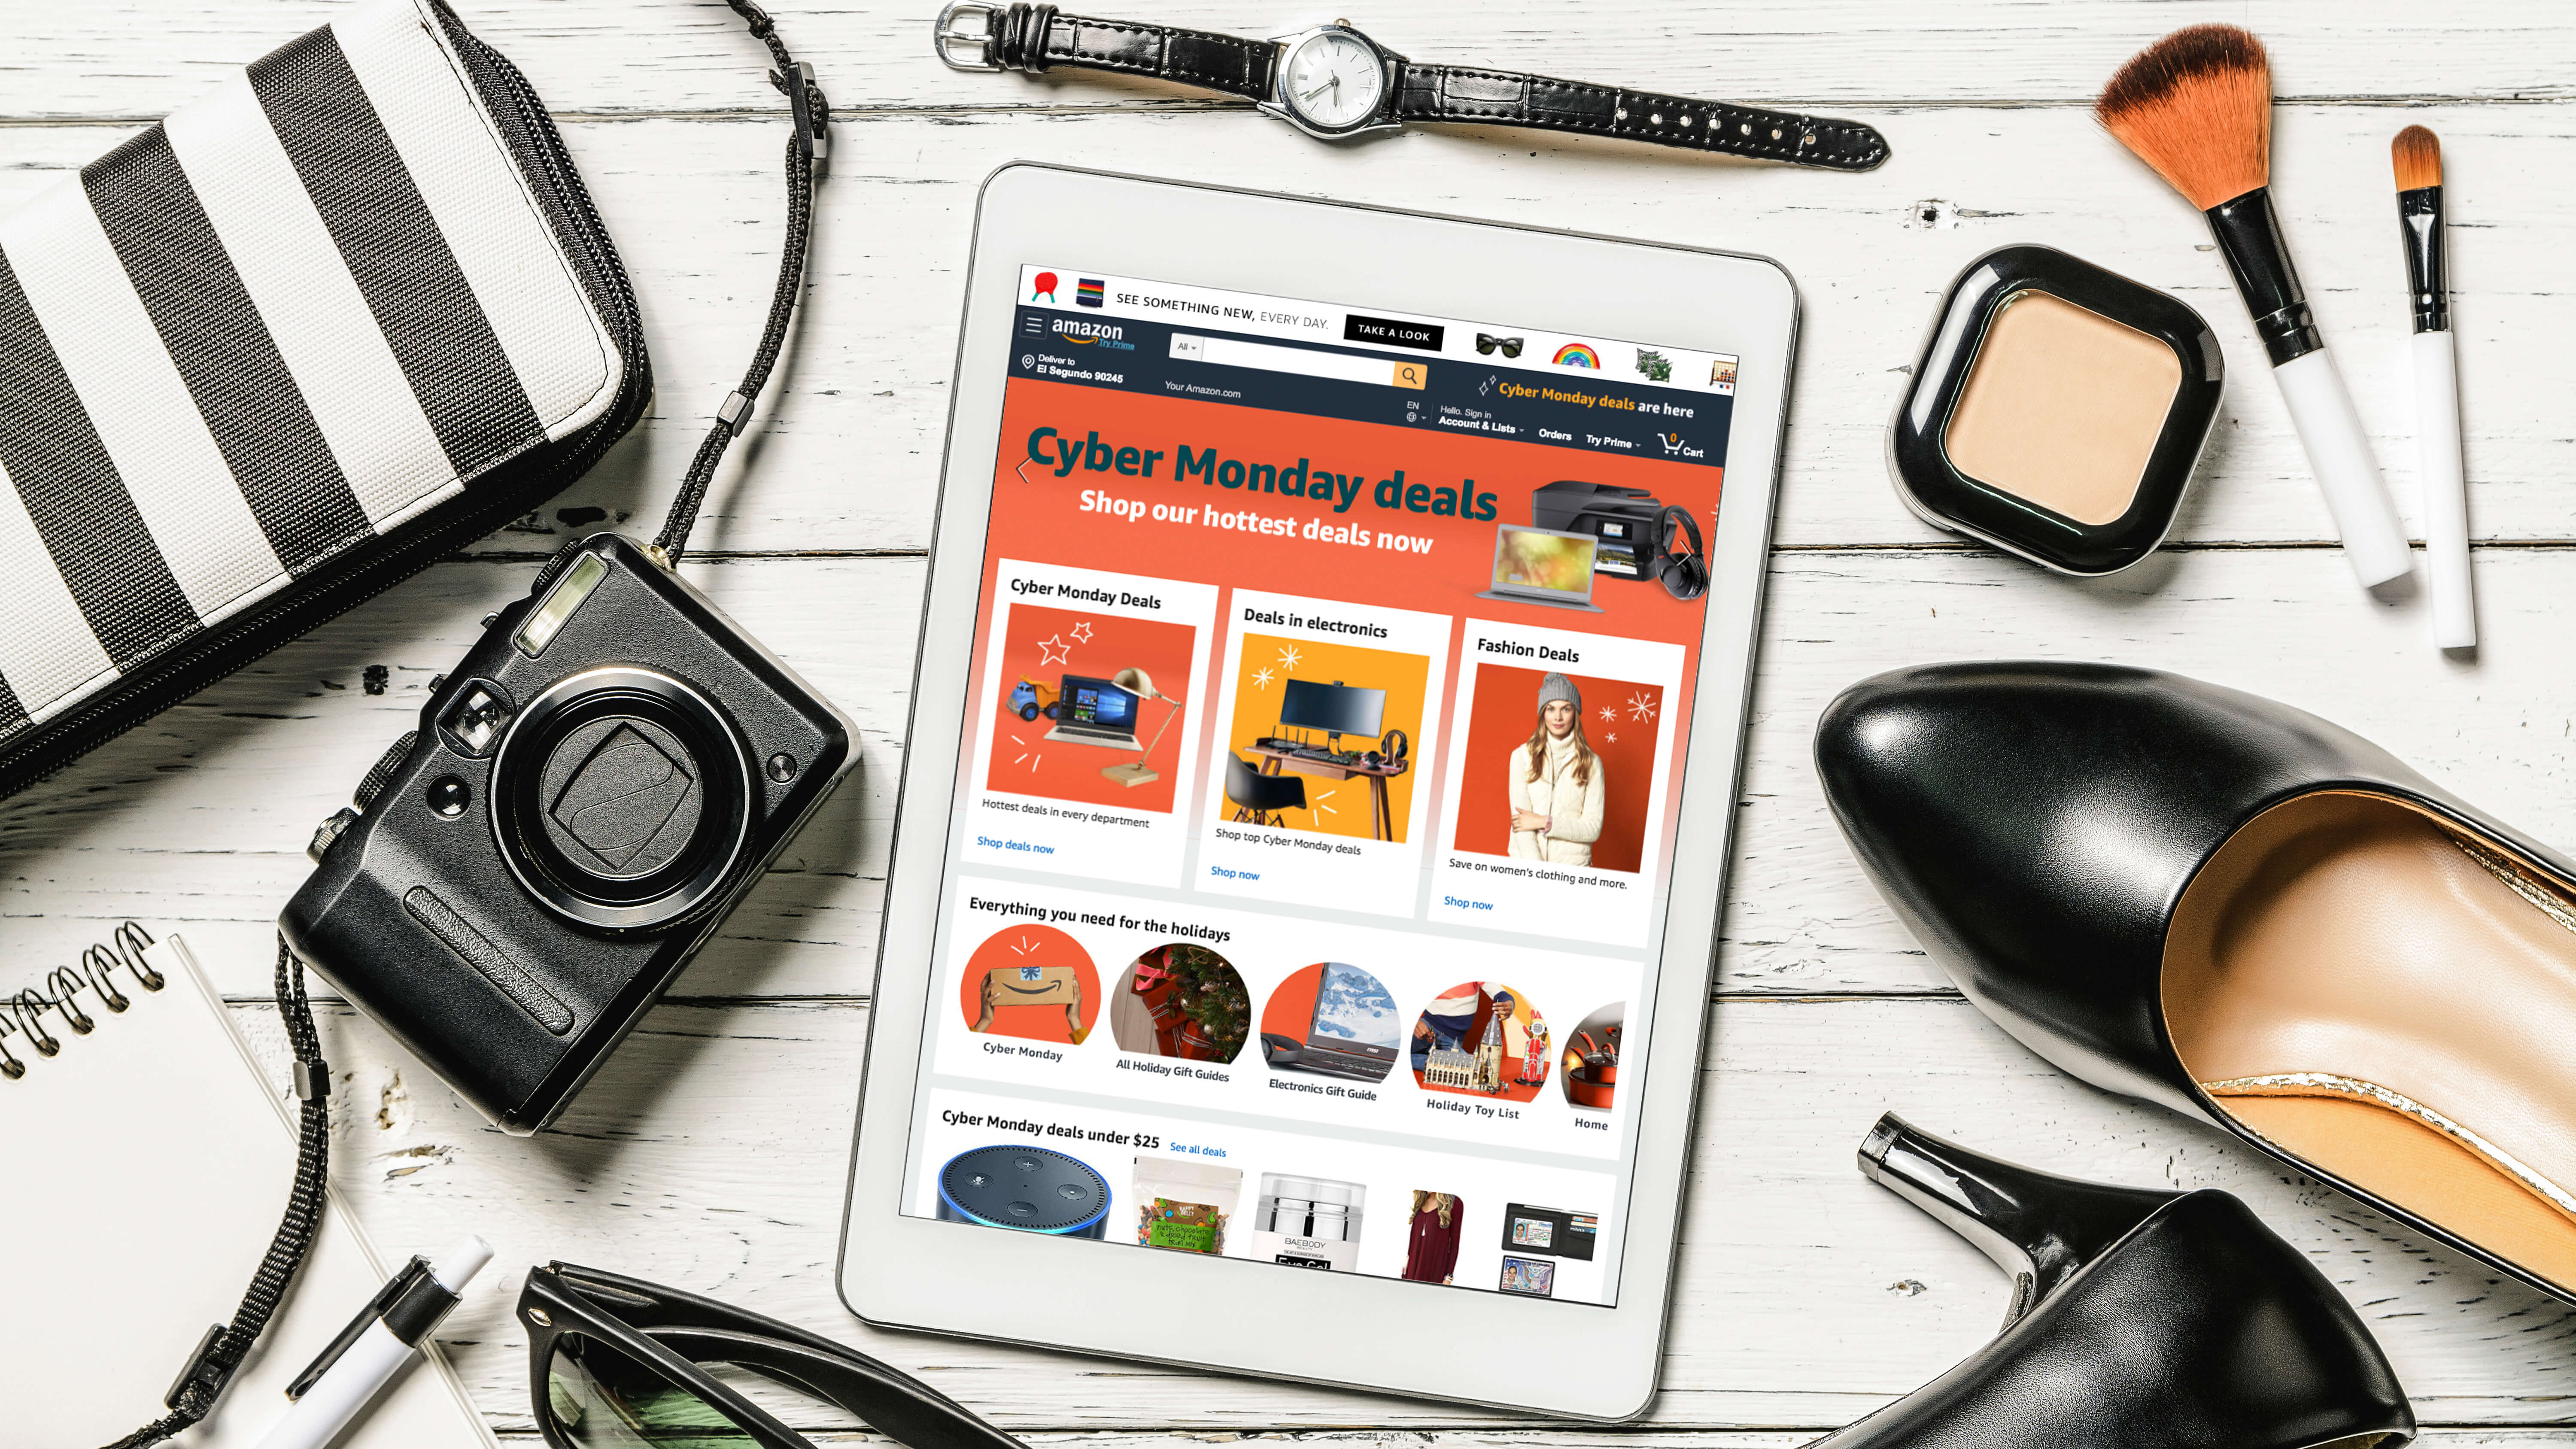 Amazon CyberMondayDeals: The Best Electronics, Toys and Alexa-Enabled Products